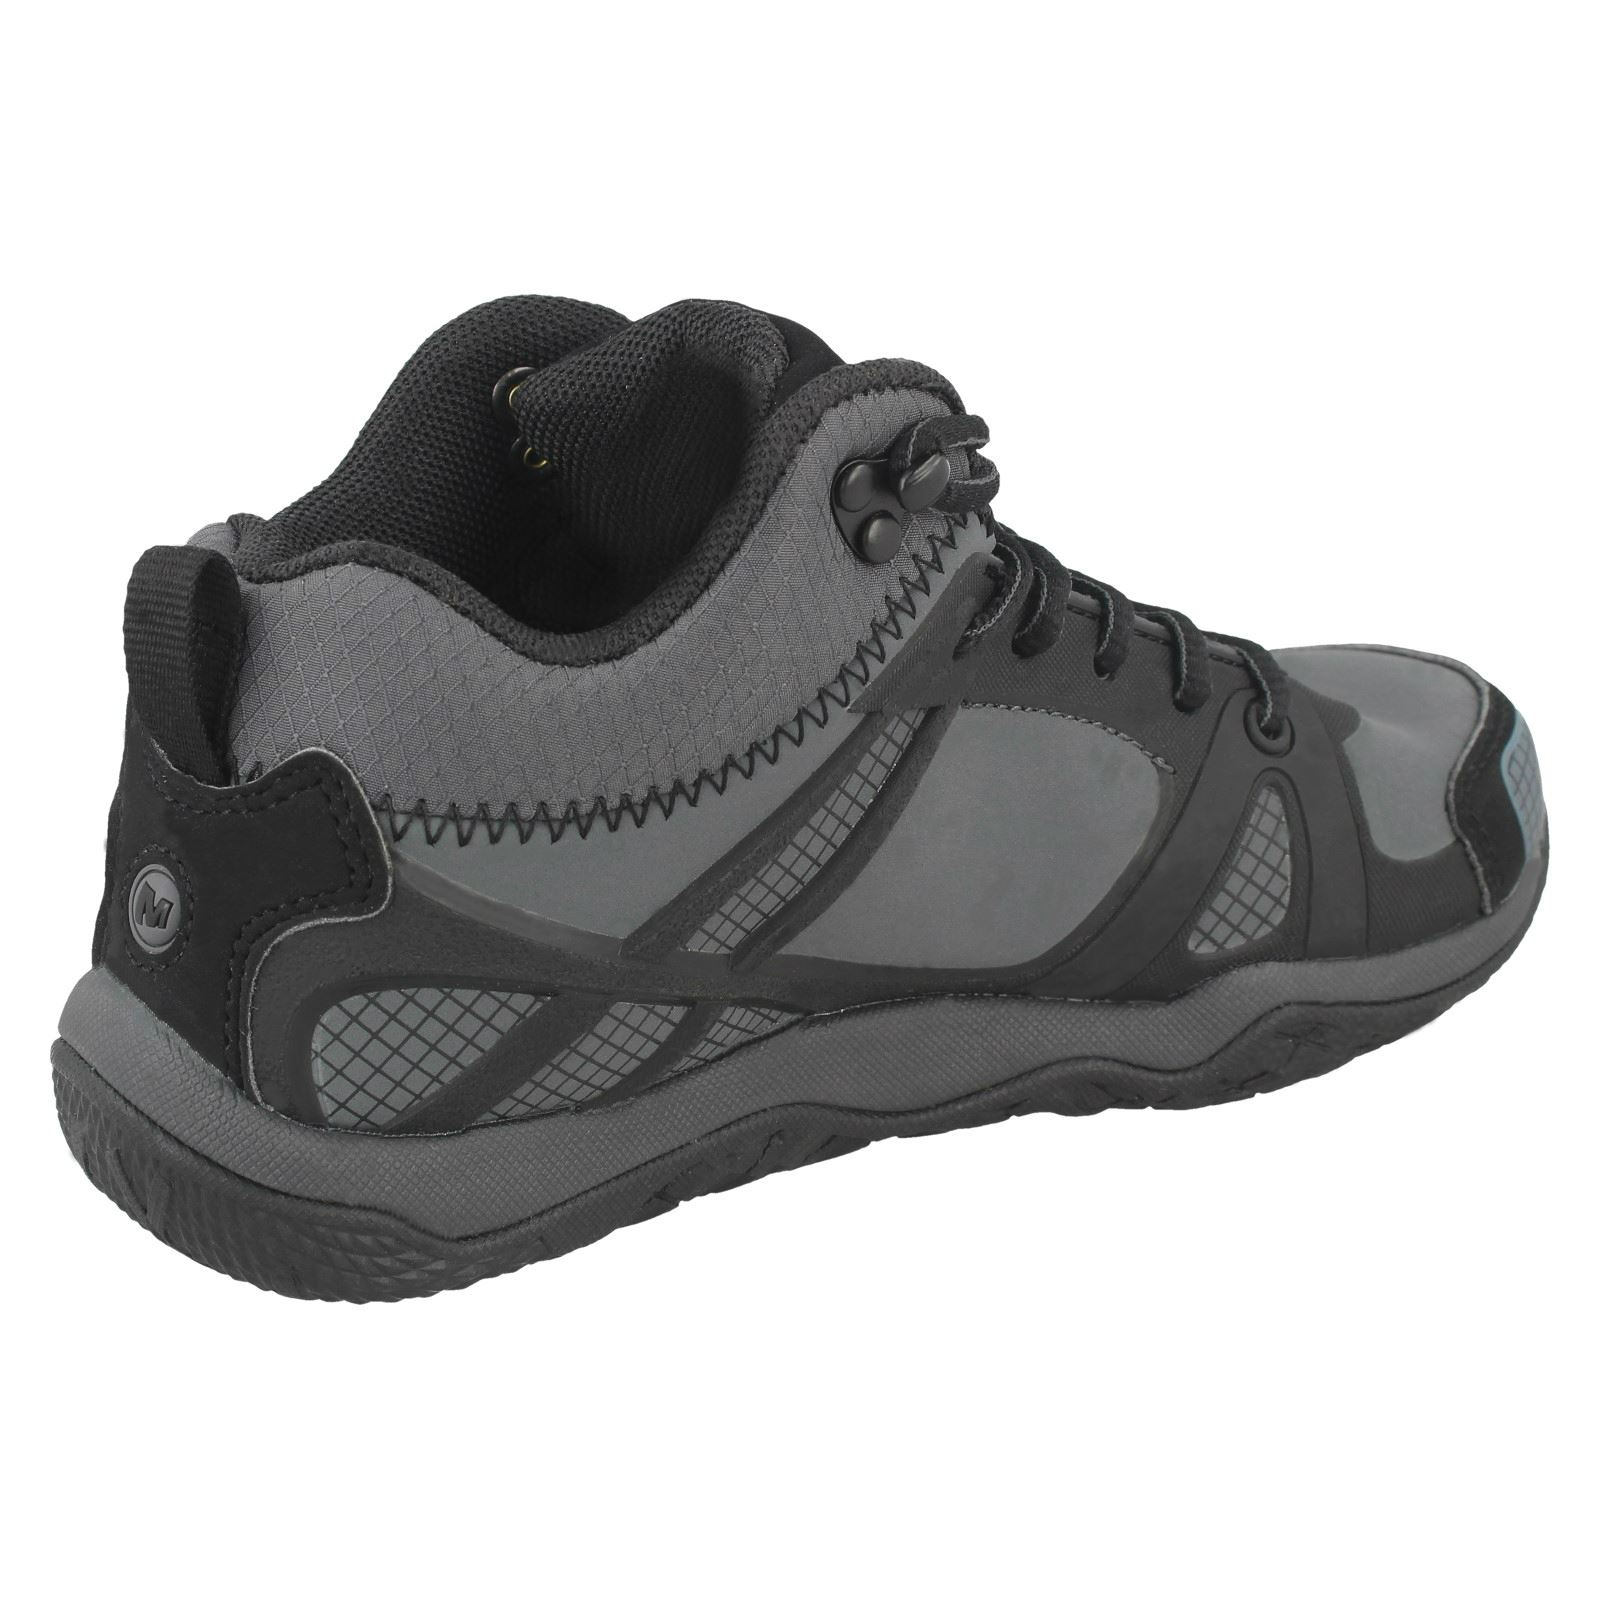 e4de0a97 Details about Childrens Merrell Waterproof Ankle Boots 'Proterra Mid J95461'